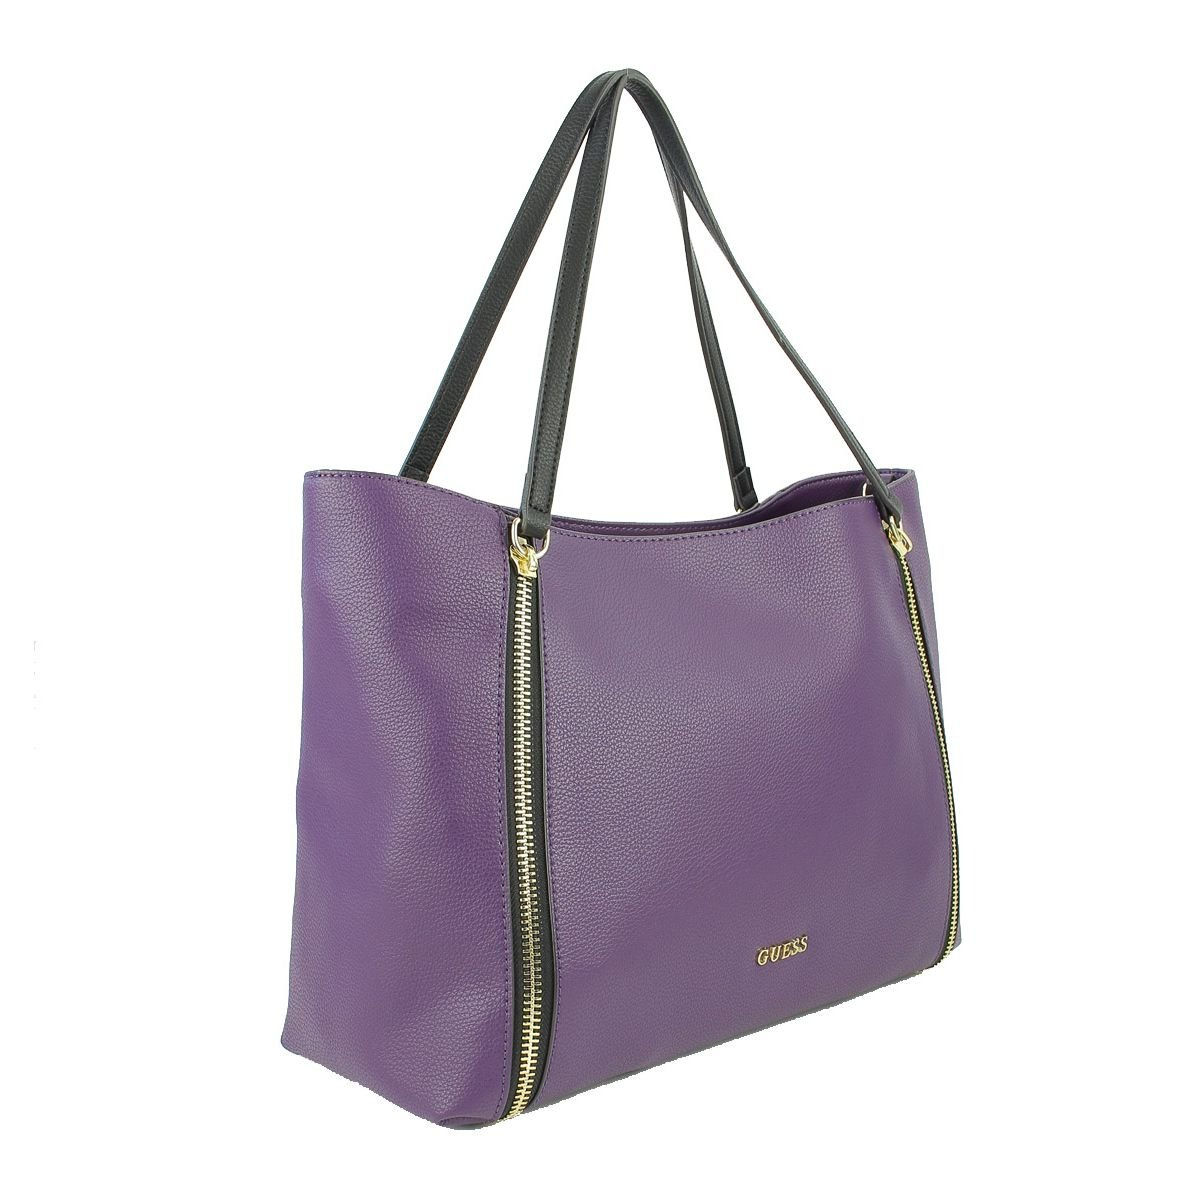 6638e4431b Guess - Sac cabas Angie (HWALAPP6404) taille 30 cm: Amazon.fr: Chaussures  et Sacs